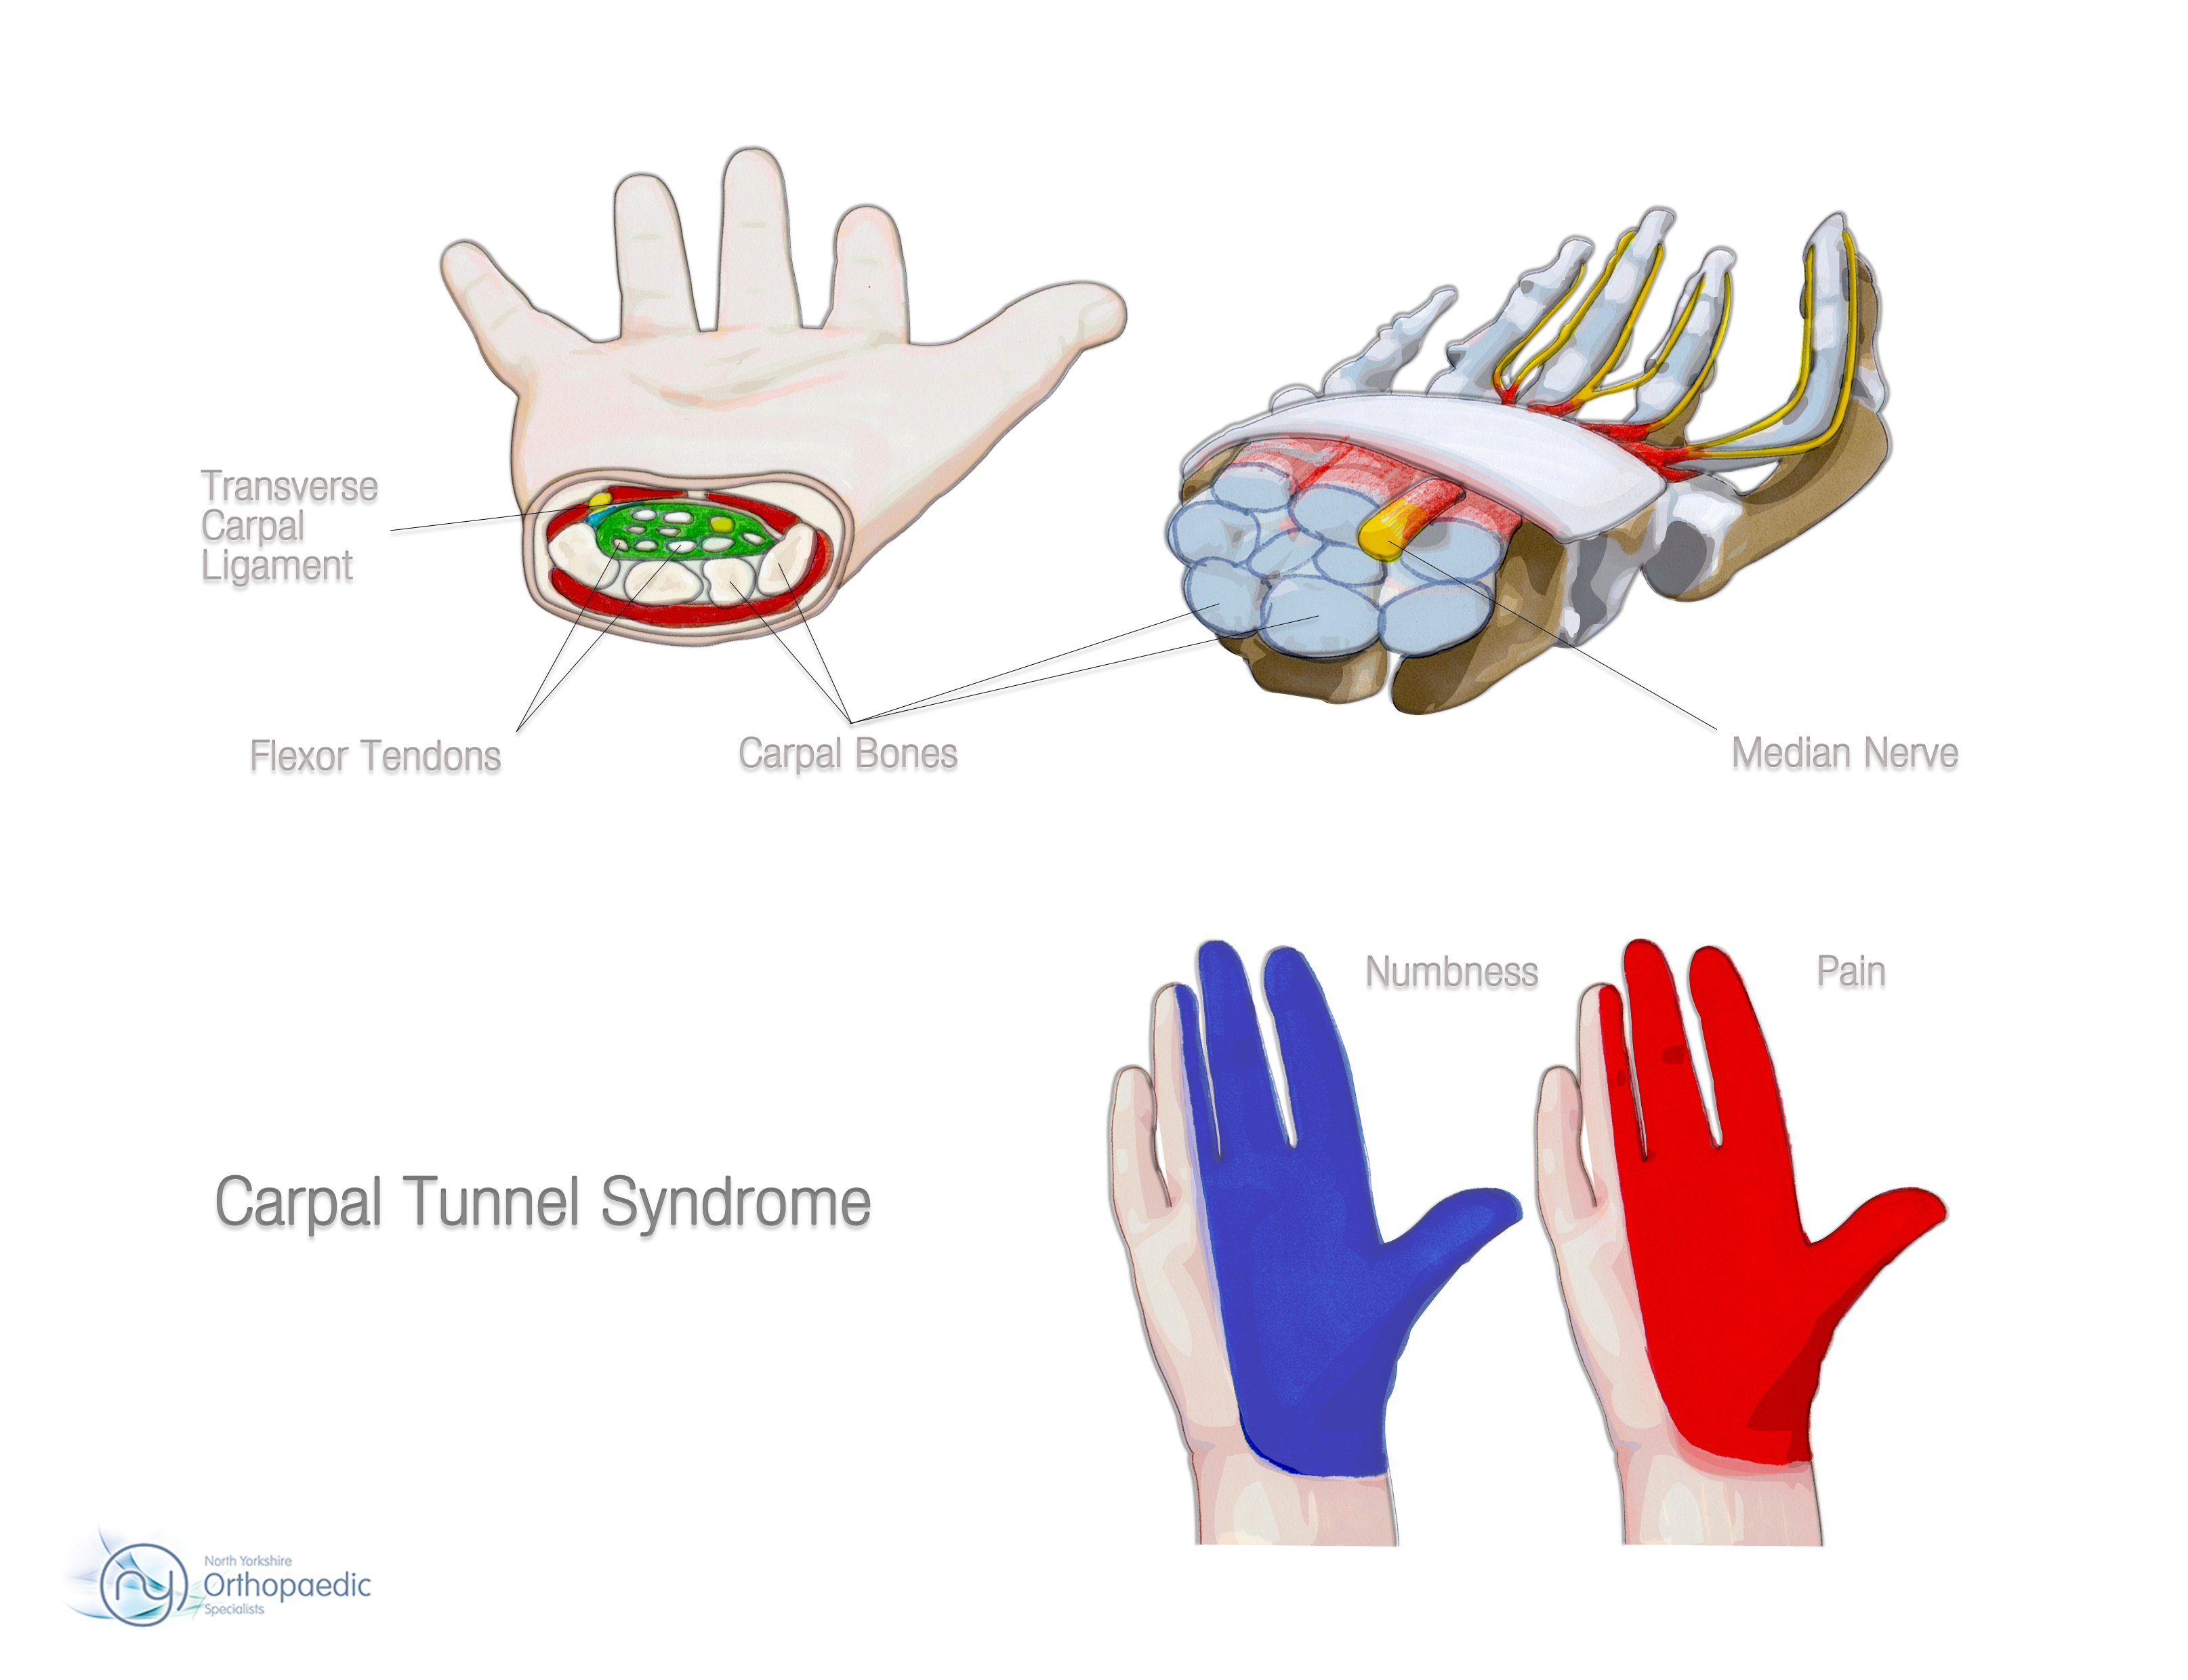 Carpal Tunnel Syndrome | Orthopaedic - Ian Whitaker